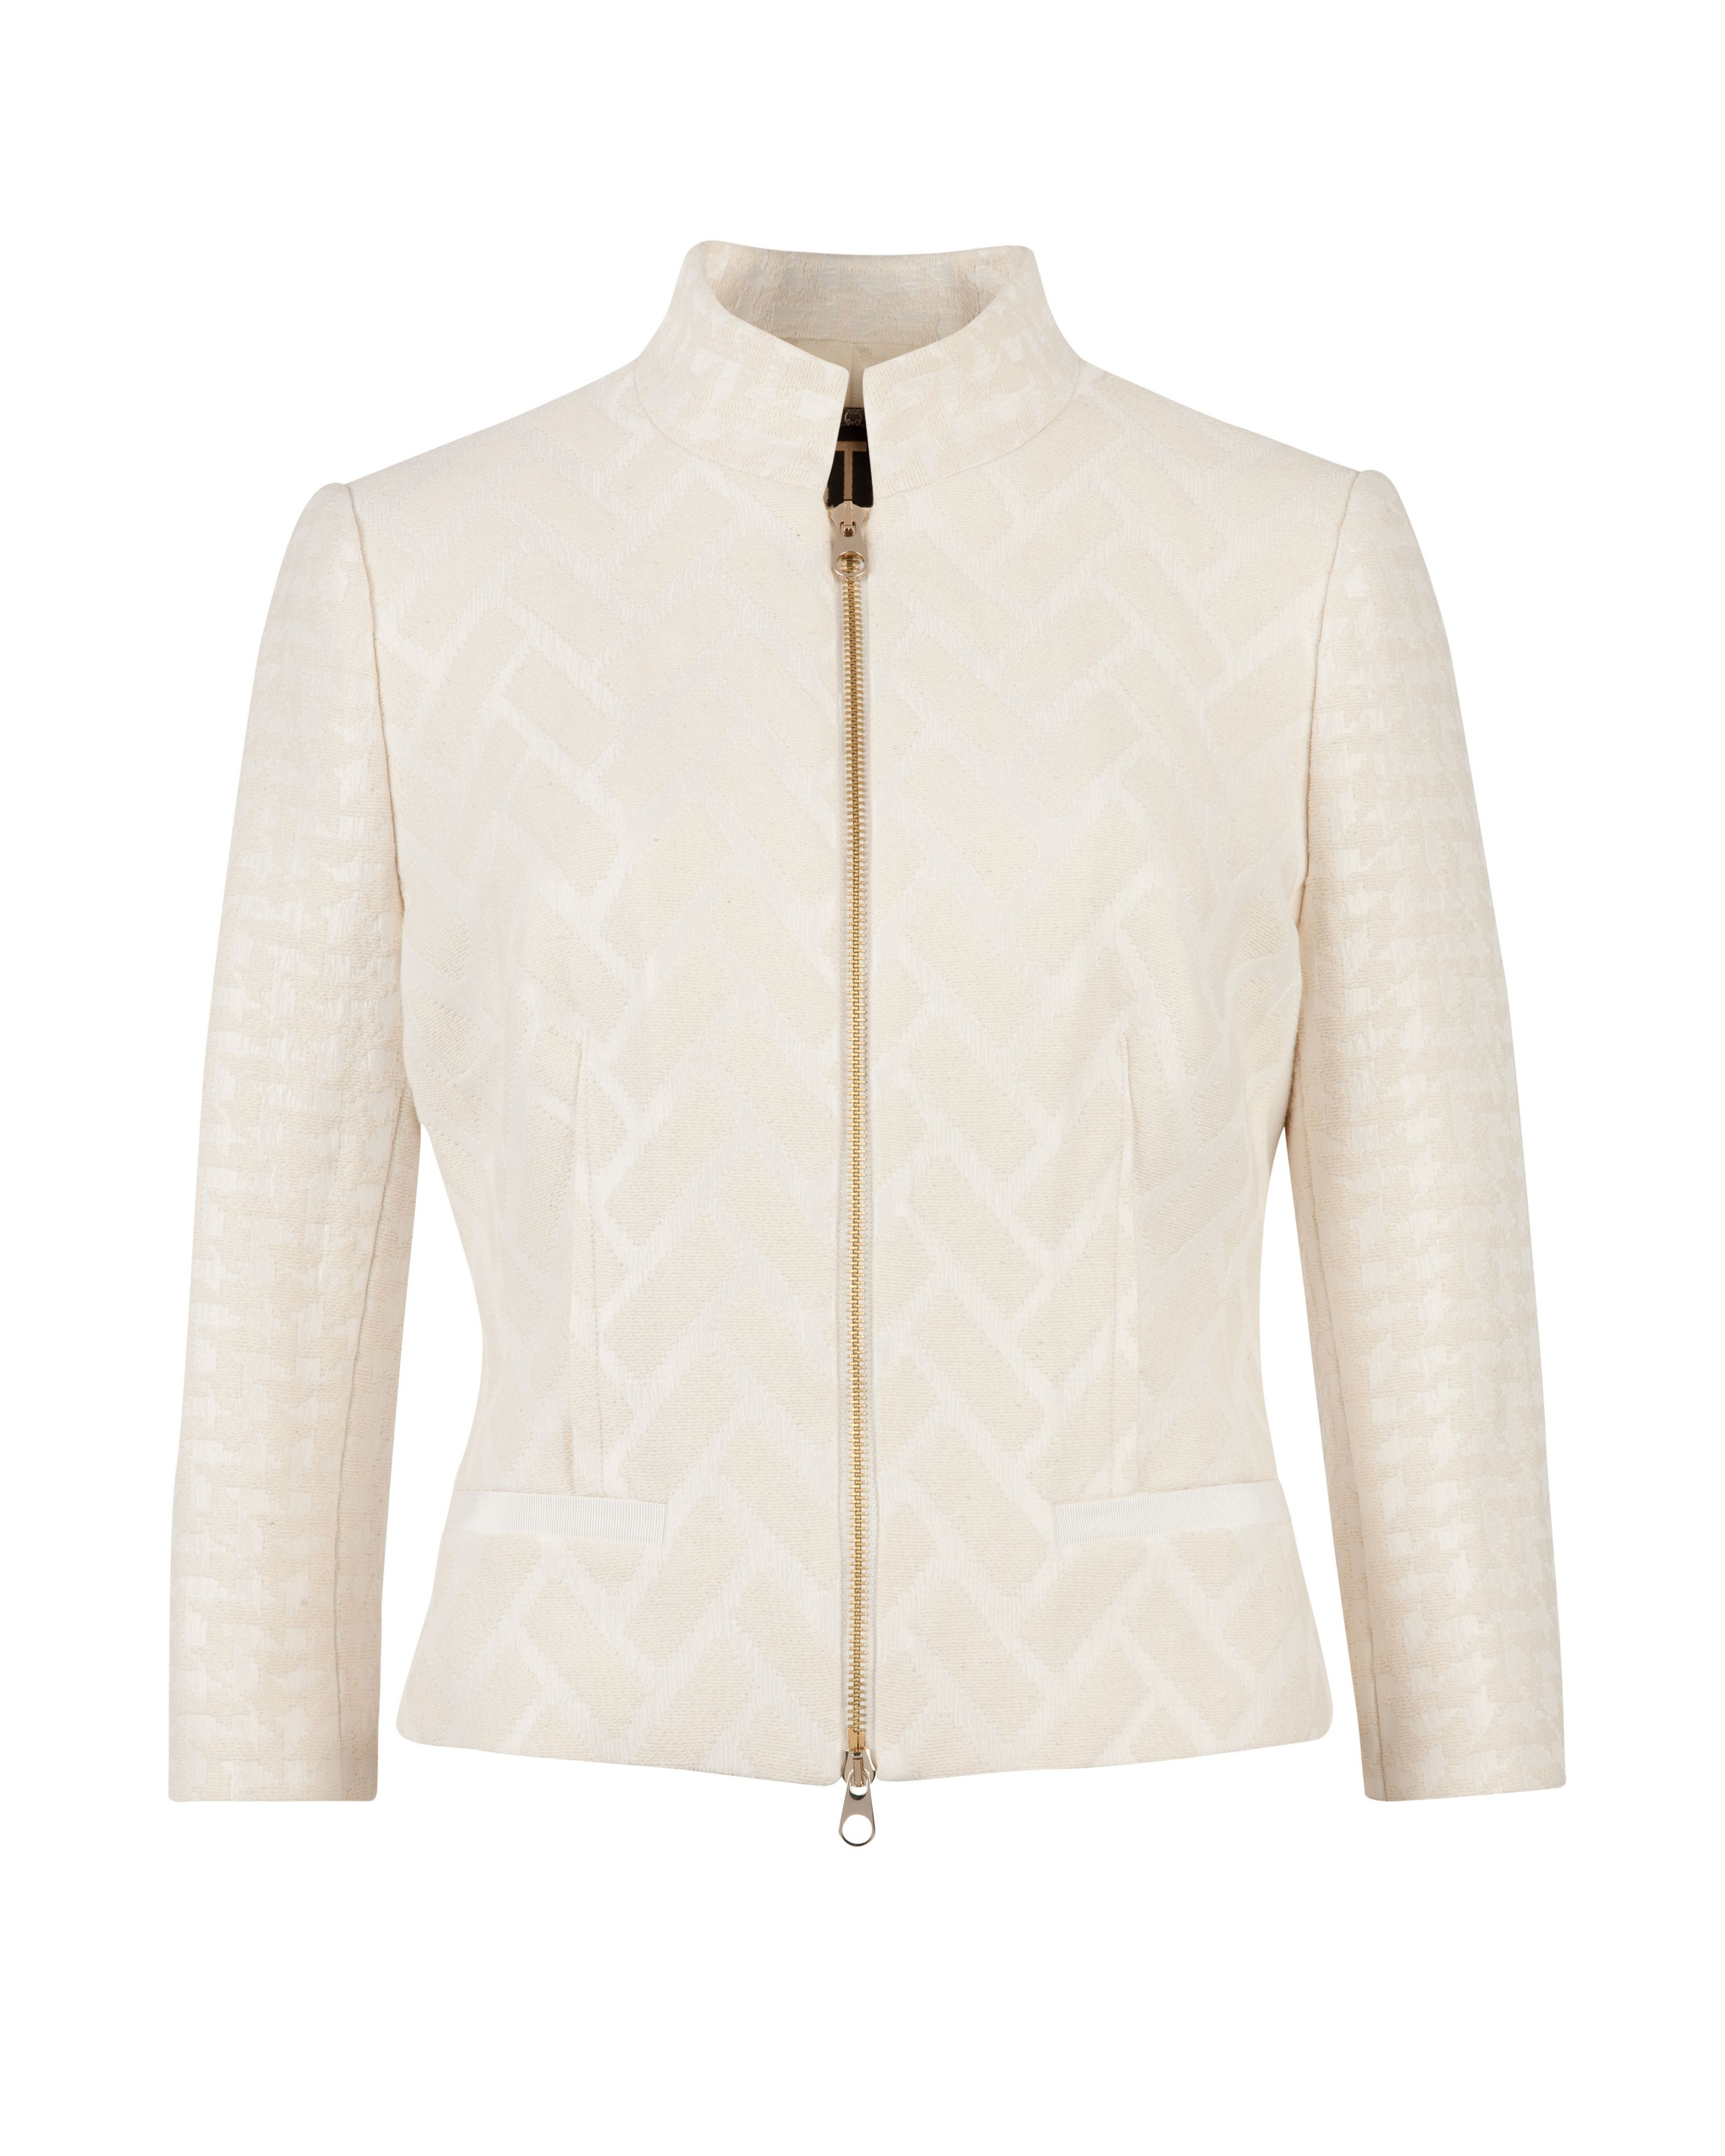 Idelle flared peplum back jacket